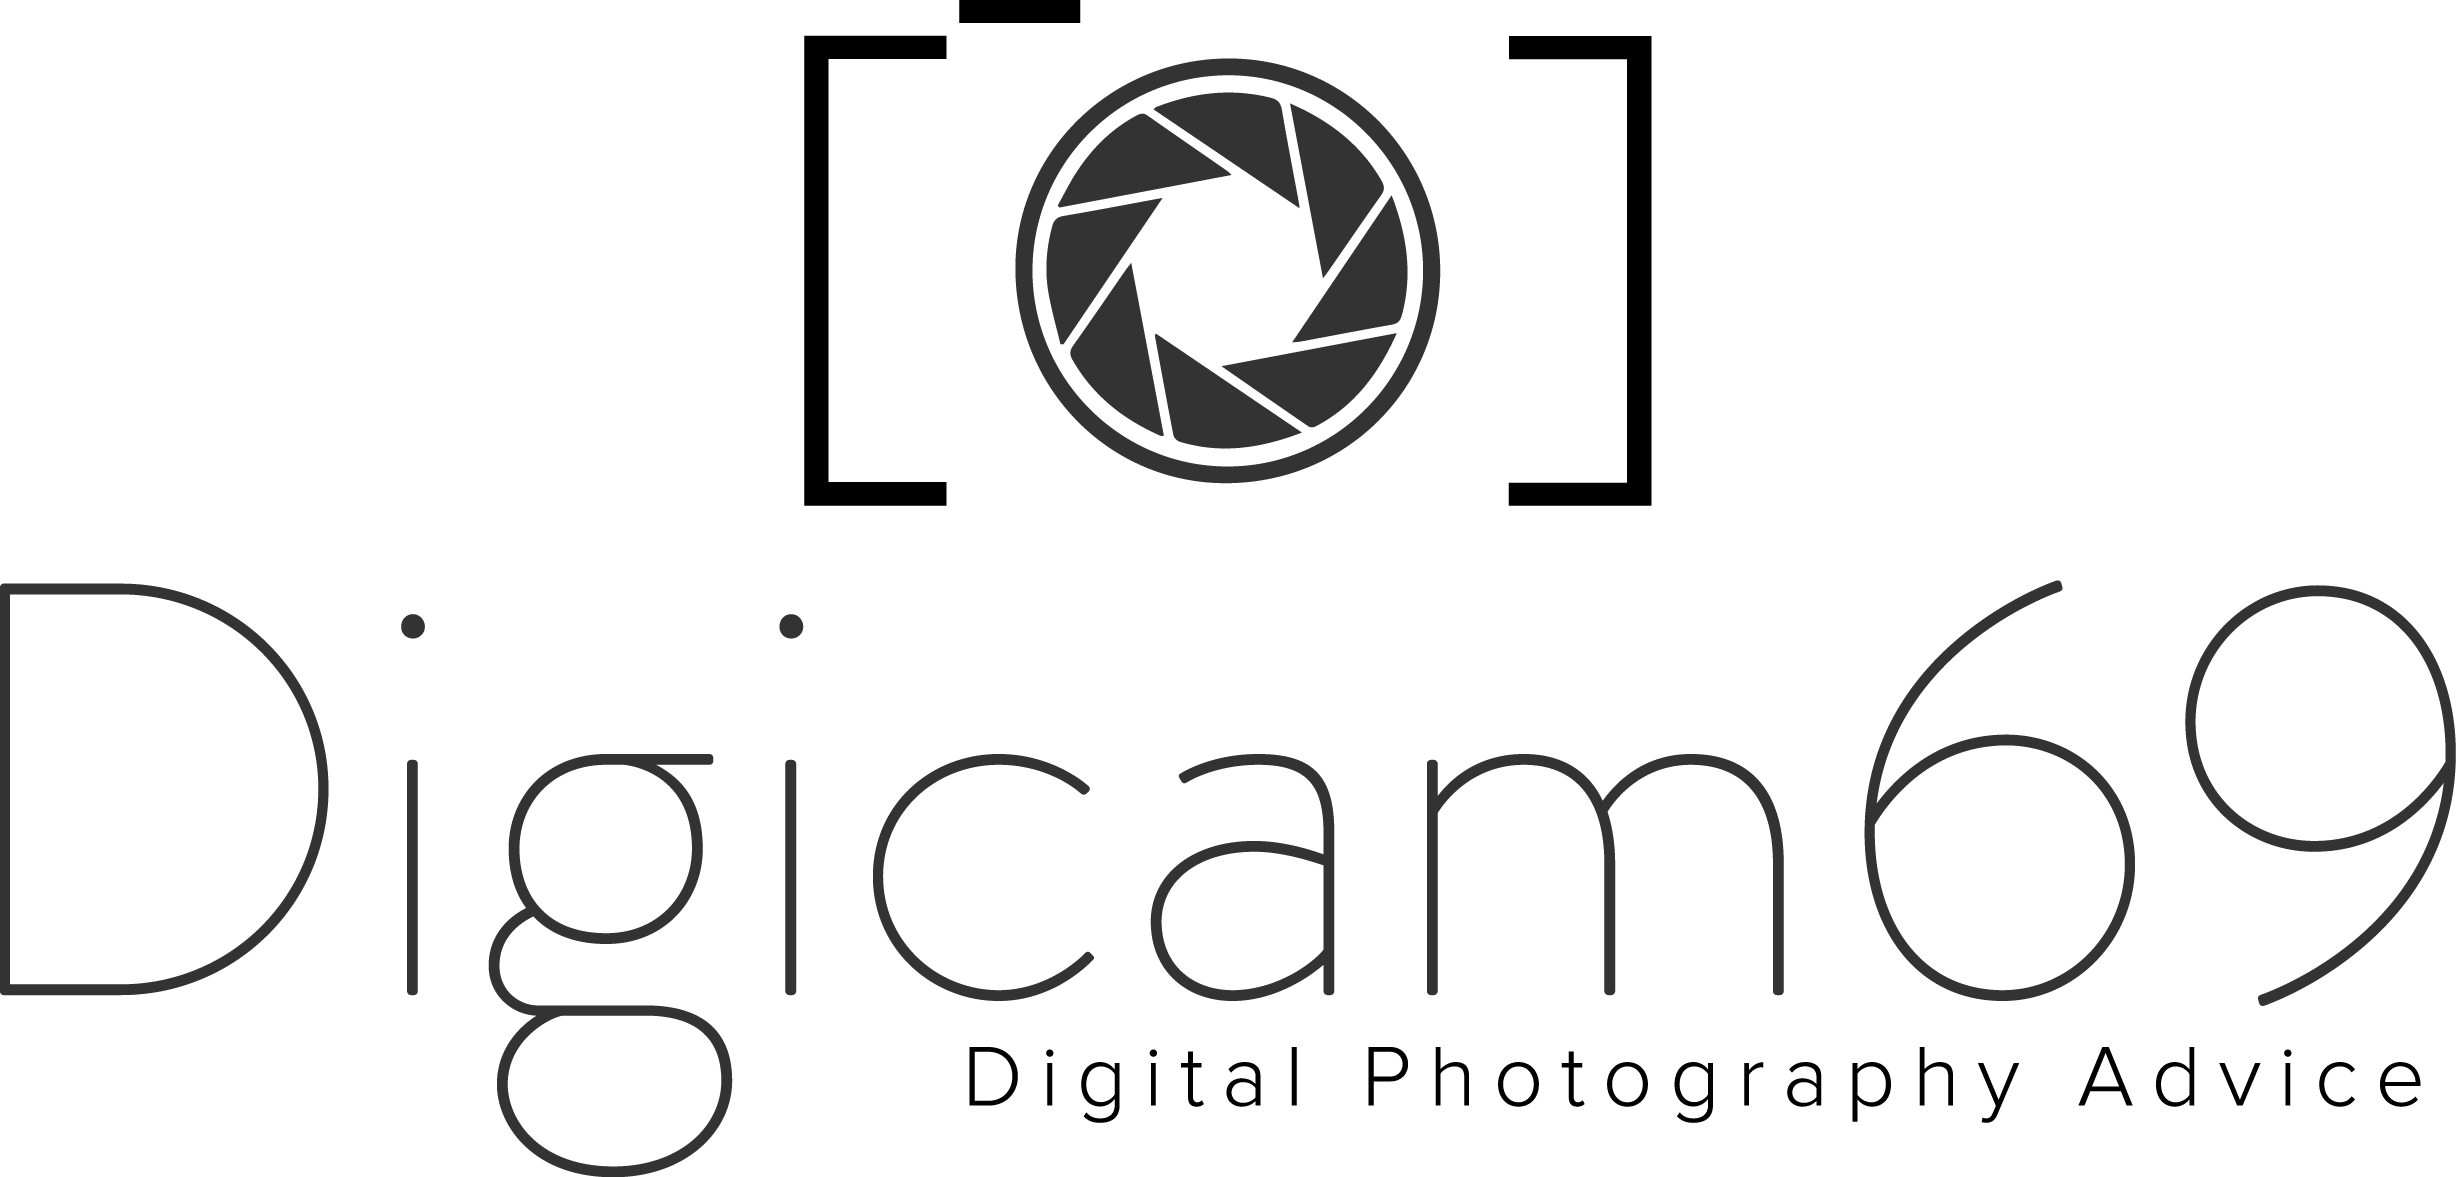 Digicam69 | Photography Advice & Photo Submission Site